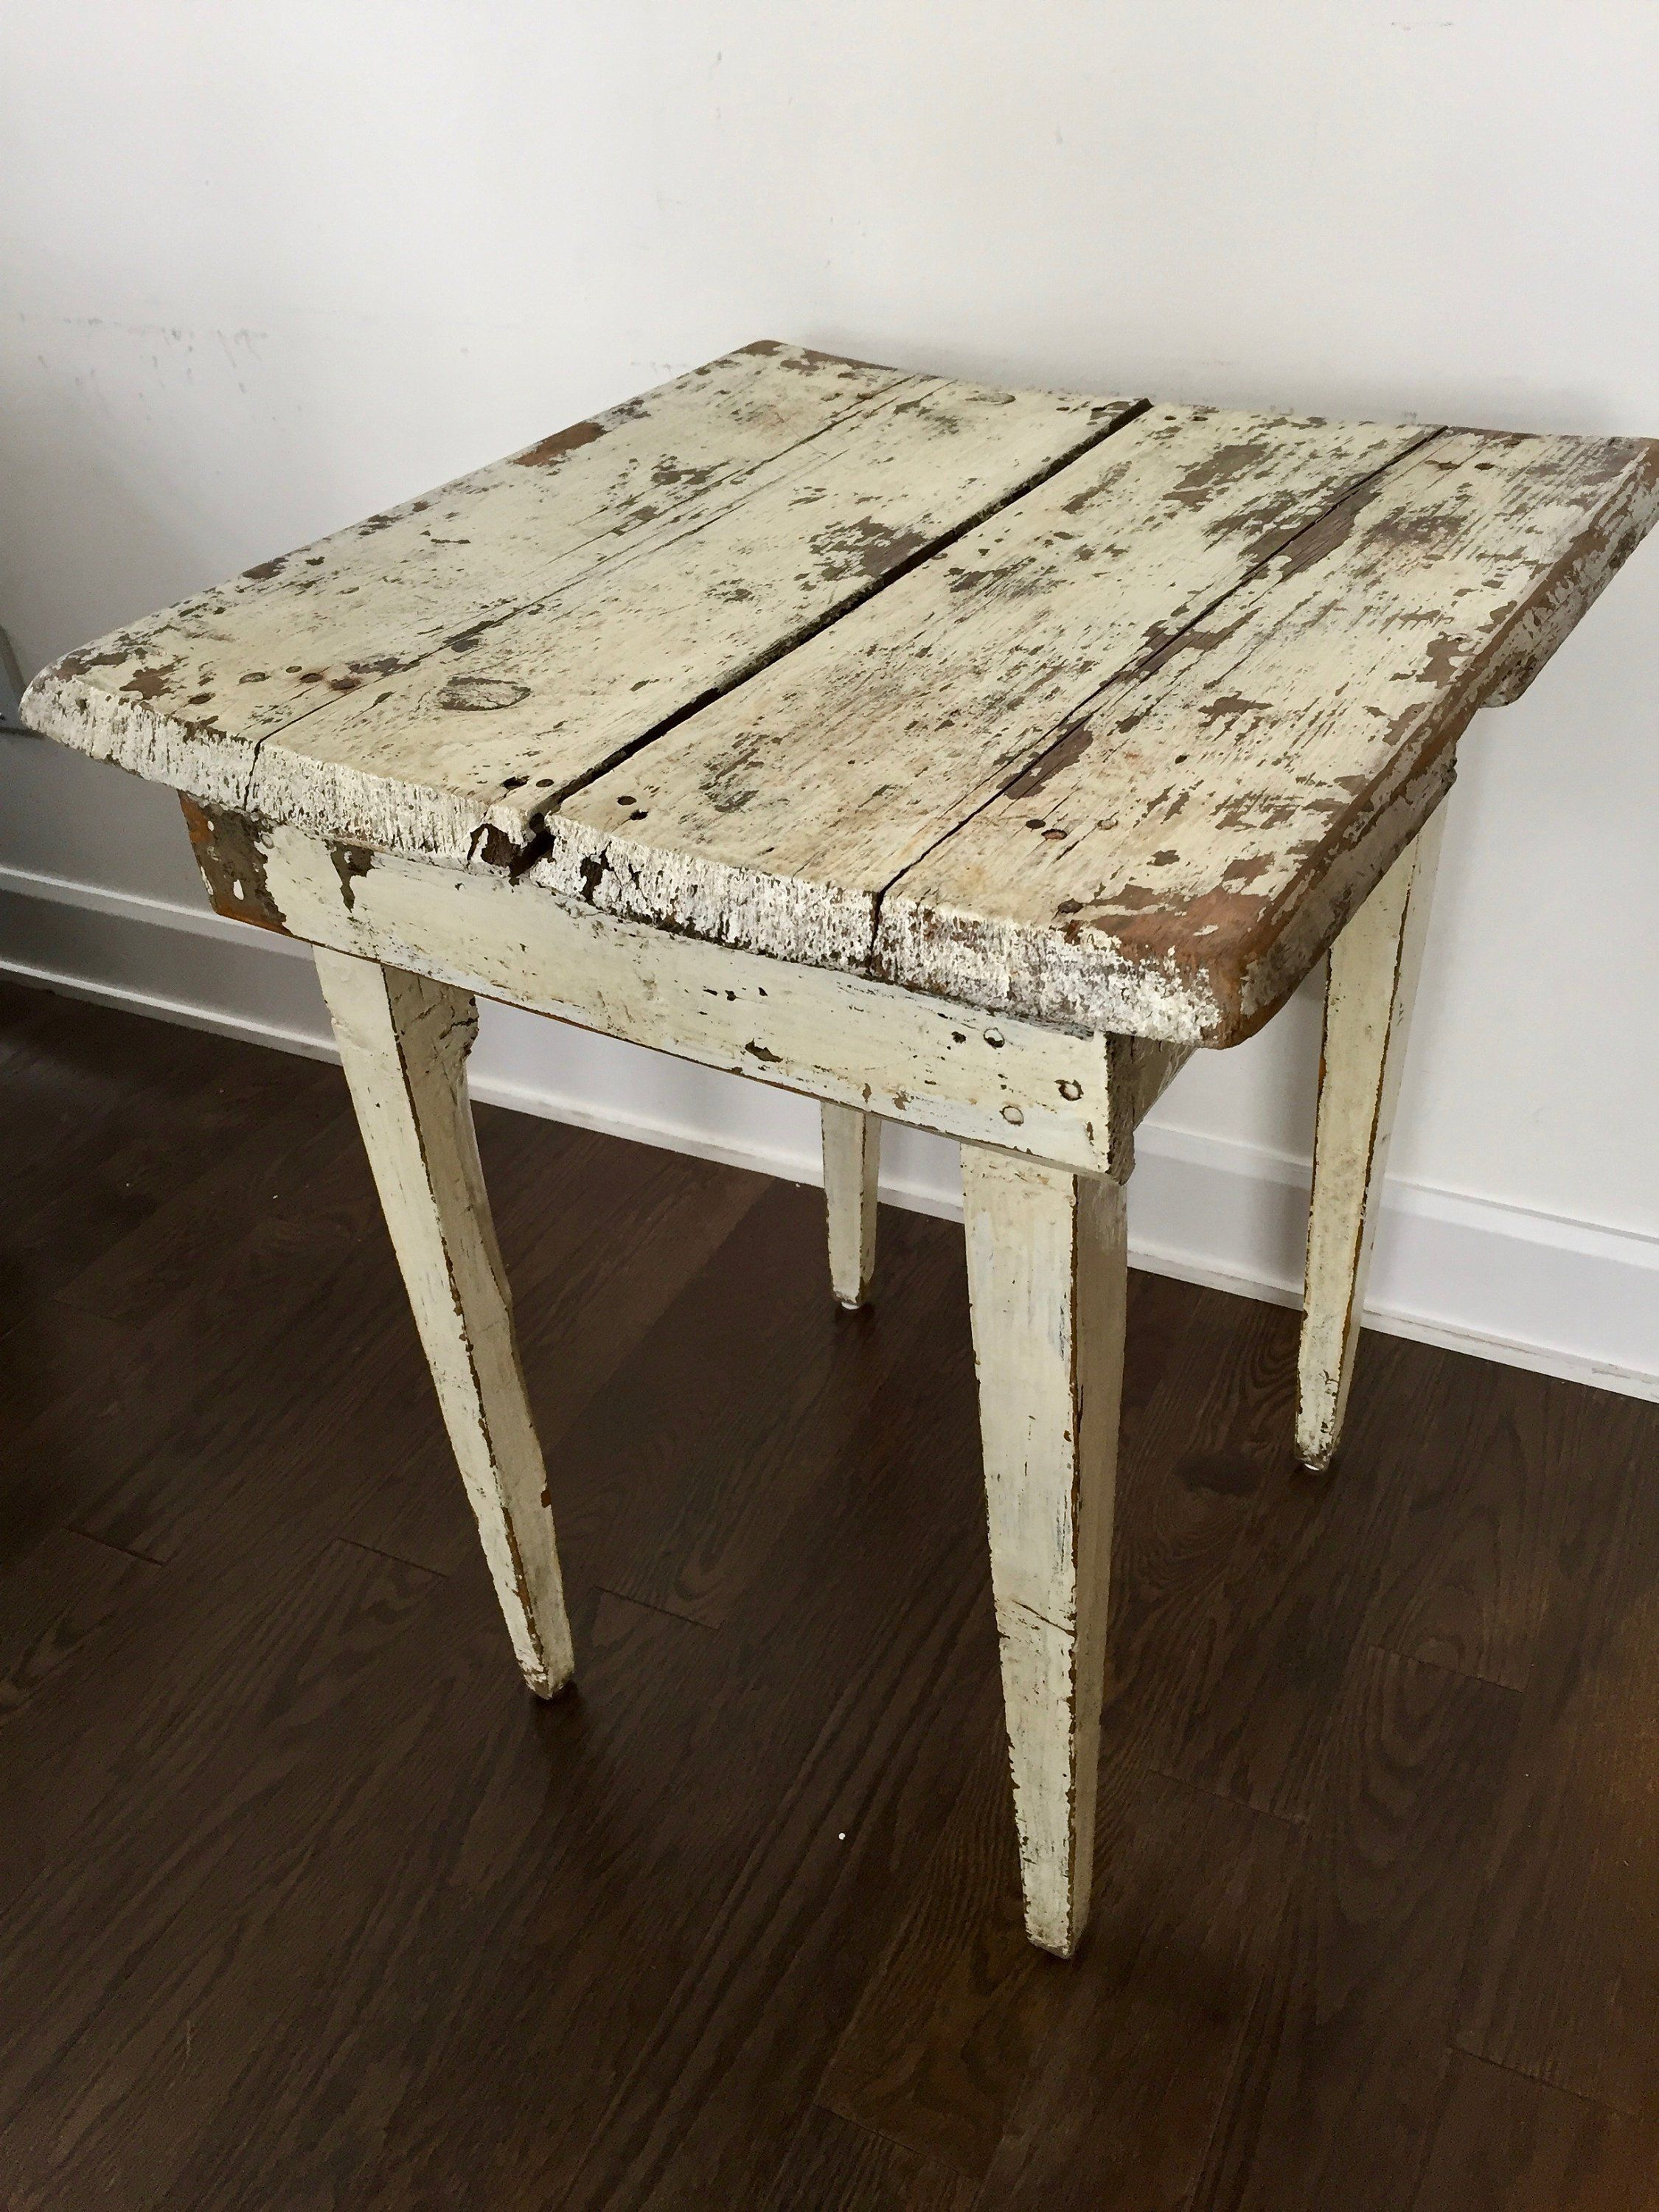 Its Clic Antique Styling Features Turned Wooden Legs And A Back Finished With Mix Of Stain Paint For Clean Refined Look It Has